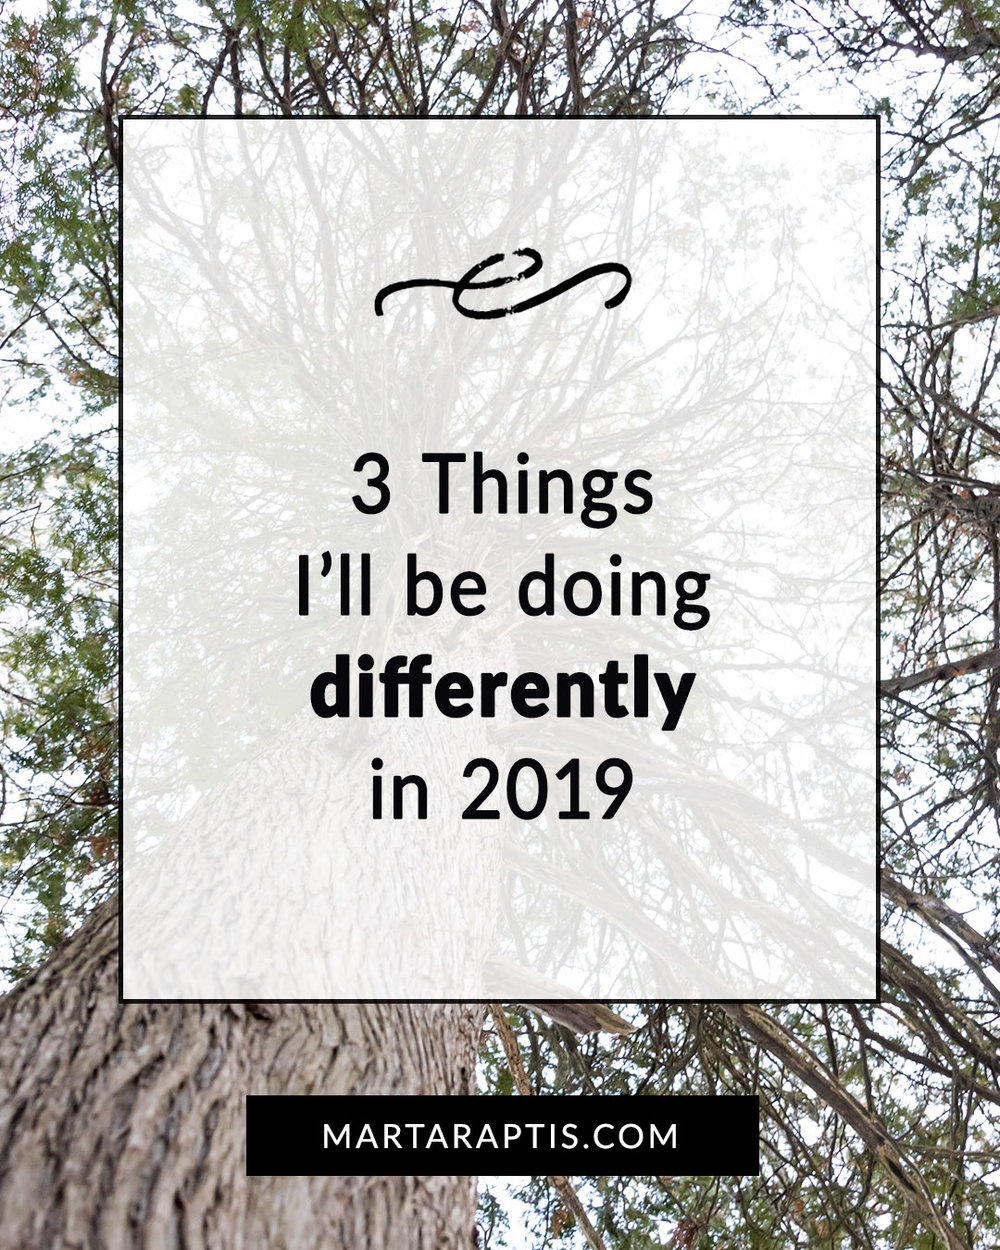 3 Things I'll be doing differently in 2019